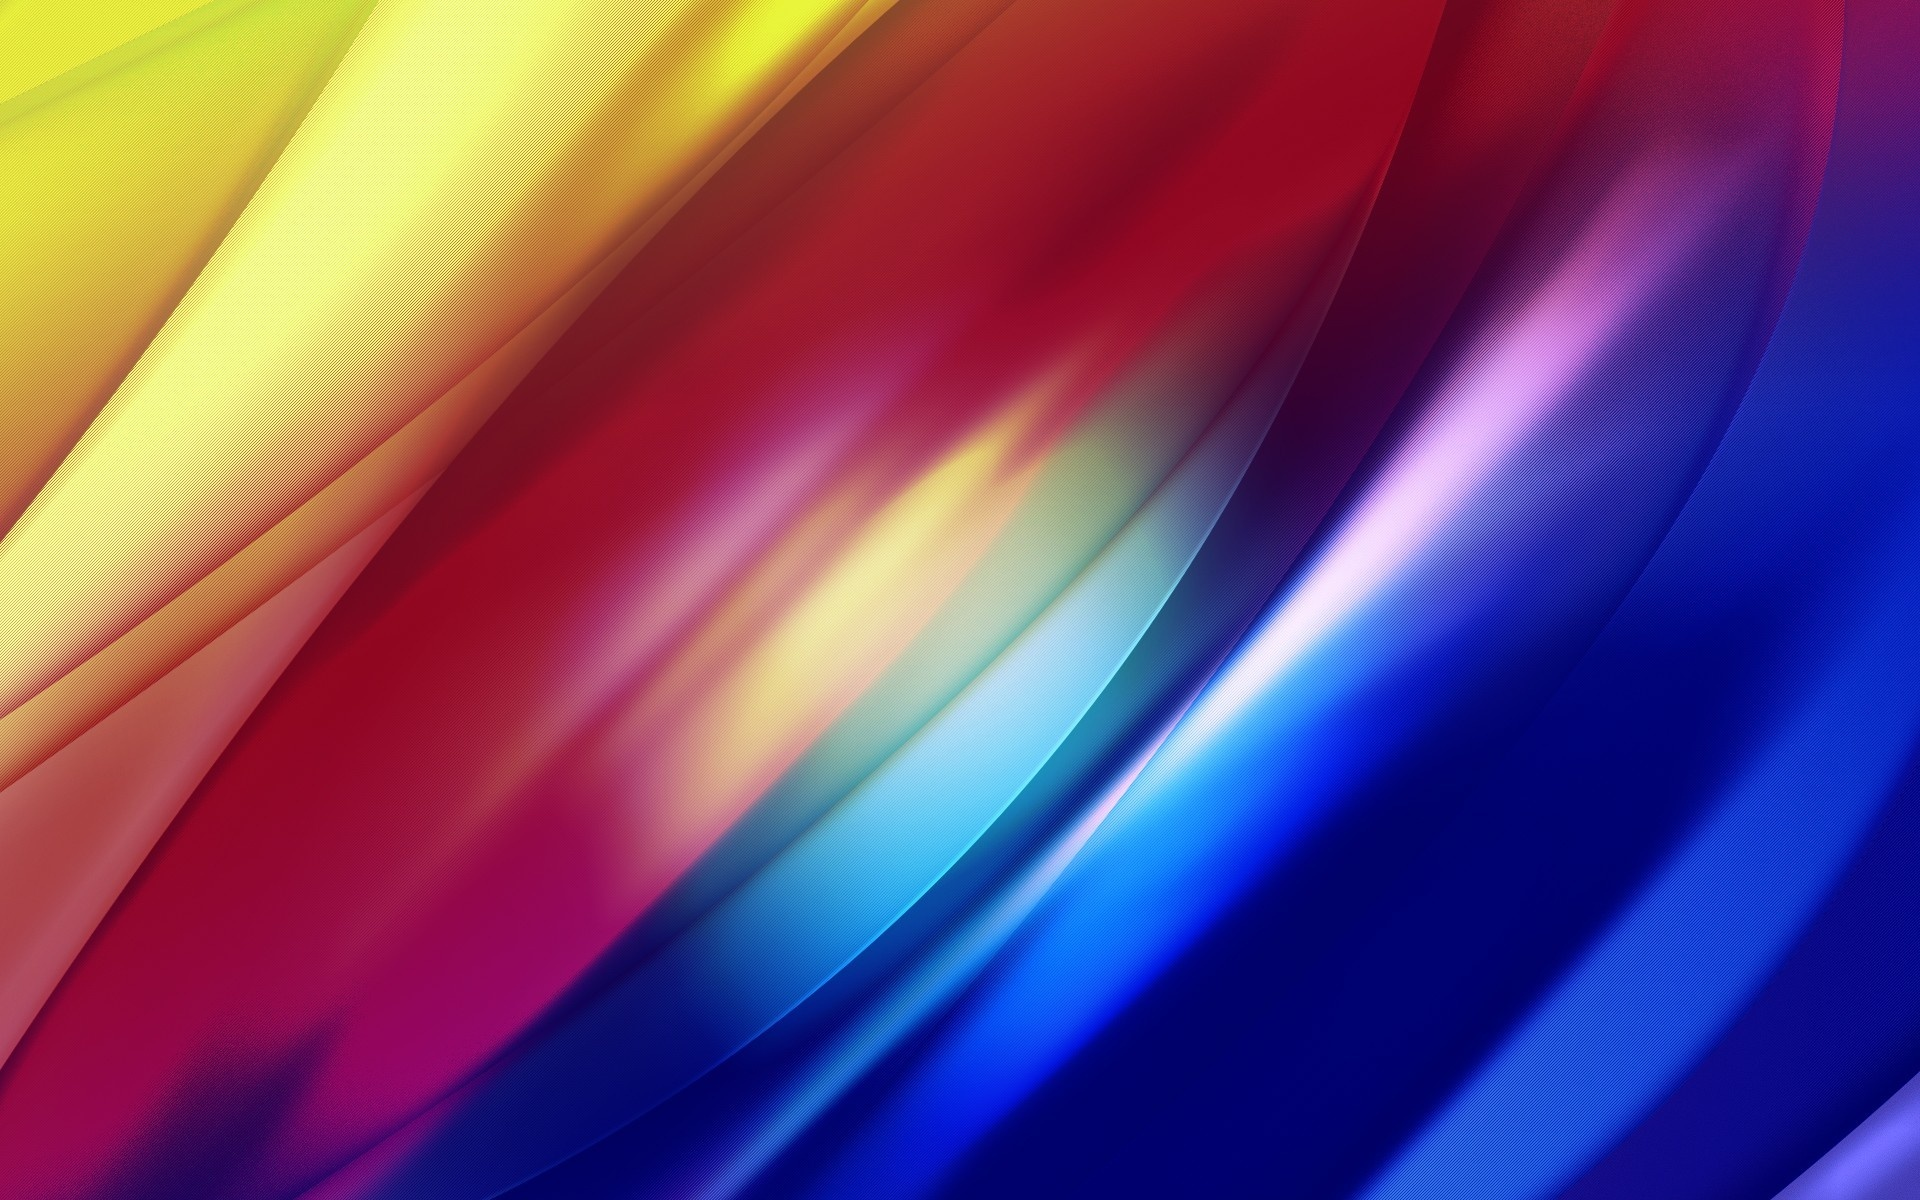 abstract colorful pixelated curves wallpaper | 1920x1200 | #9822